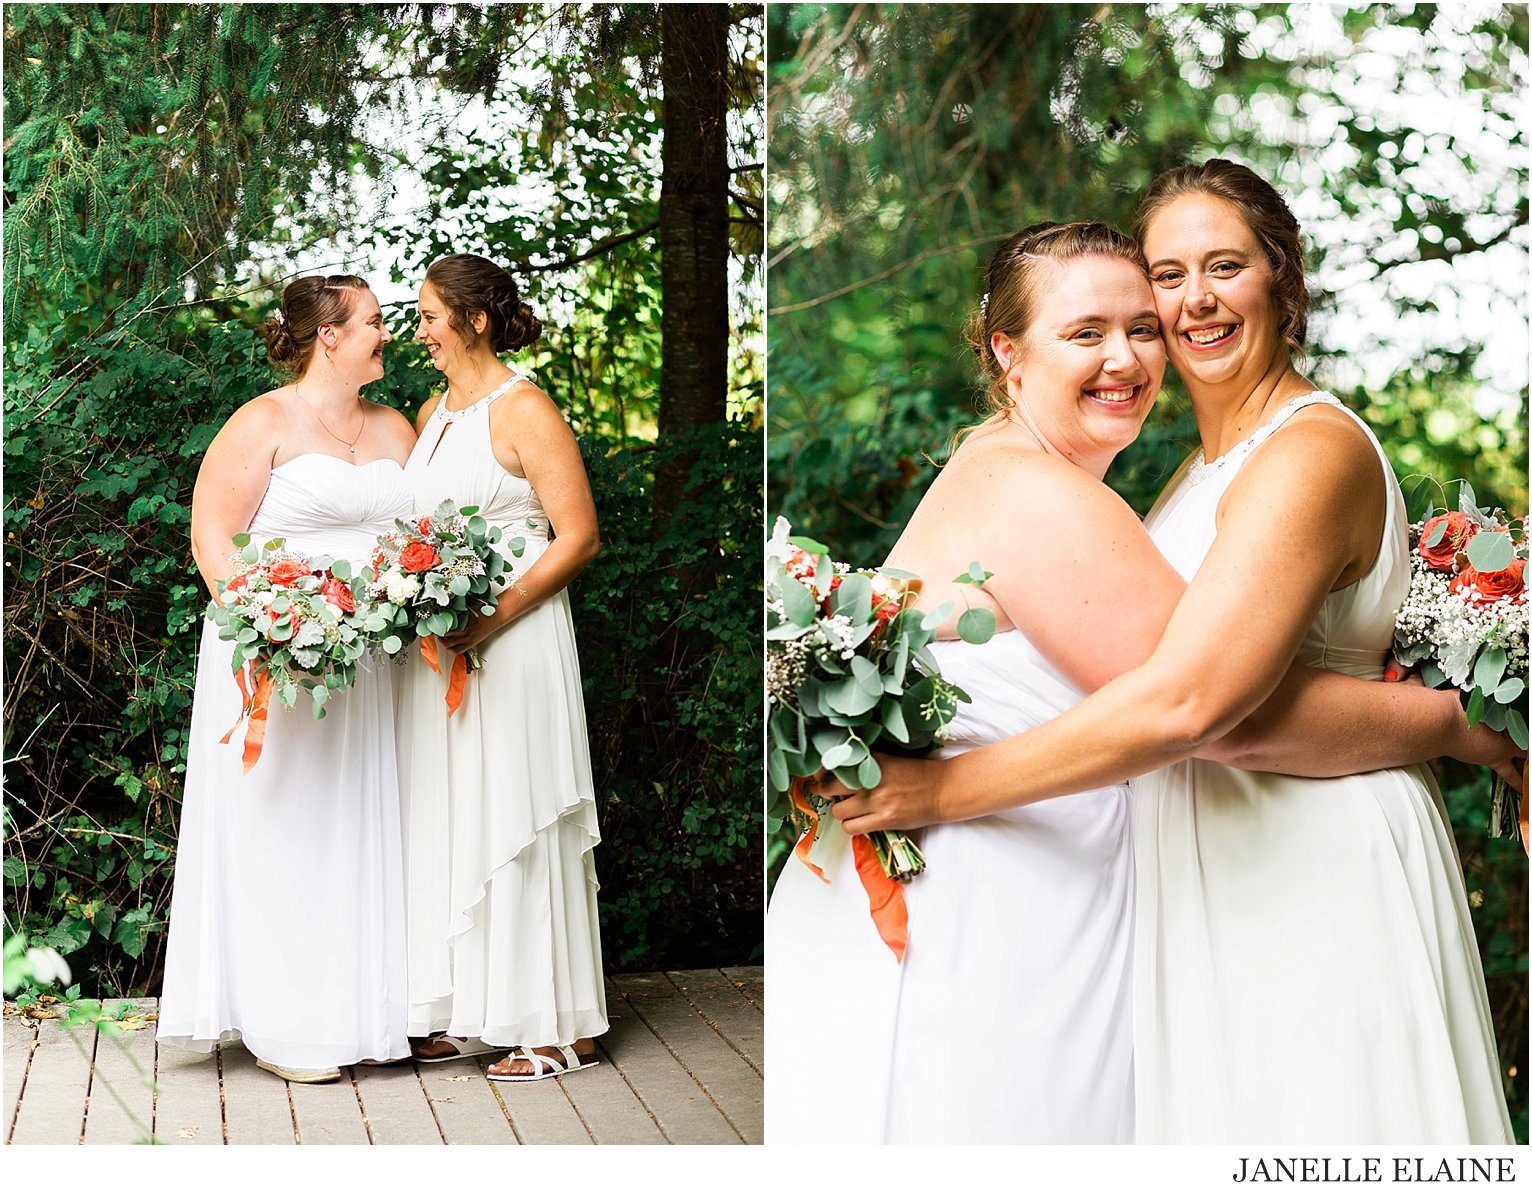 liz and christina lanning-first look and portraits-luther burbank park-janelle elaine photography-41.jpg